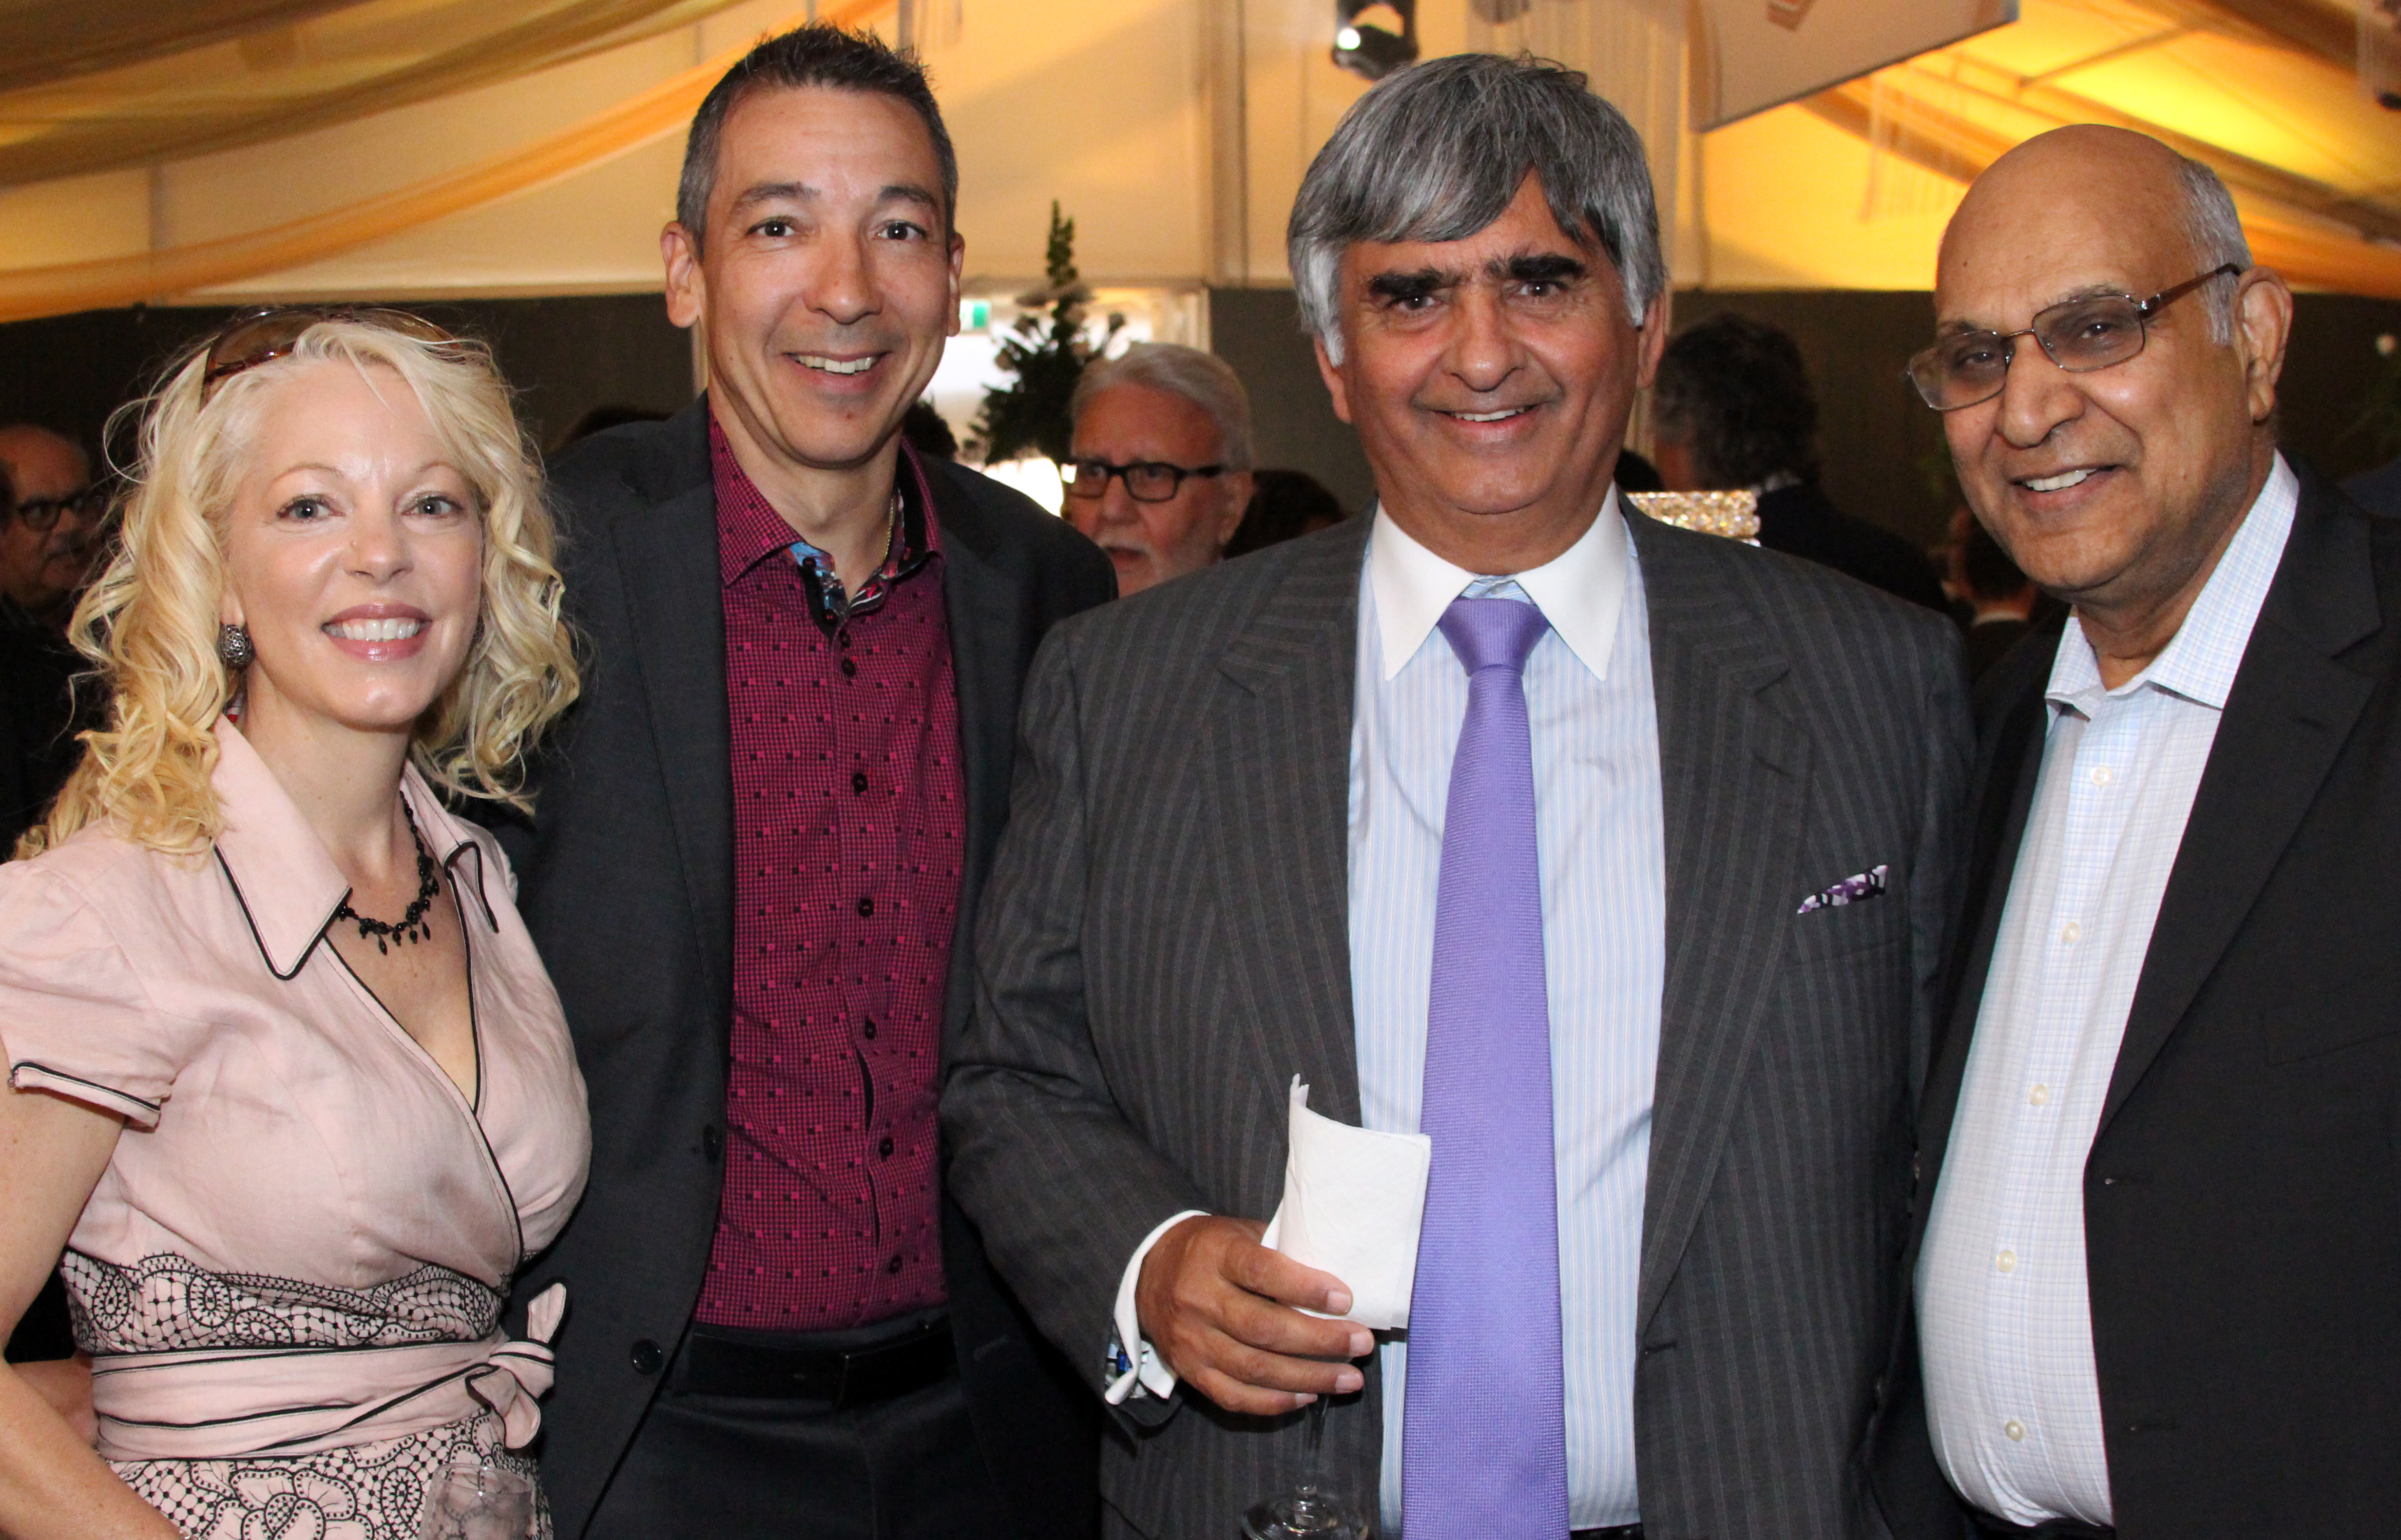 Peggy Taillon with lawyer Daniel Fernandes Bill Malhotra (Claridge Homes) and Anand Aggarwal  sc 1 st  Ottawa Business Journal & Ottawa Gold Plate Dinner honours Argos Carpets founder Peter ...